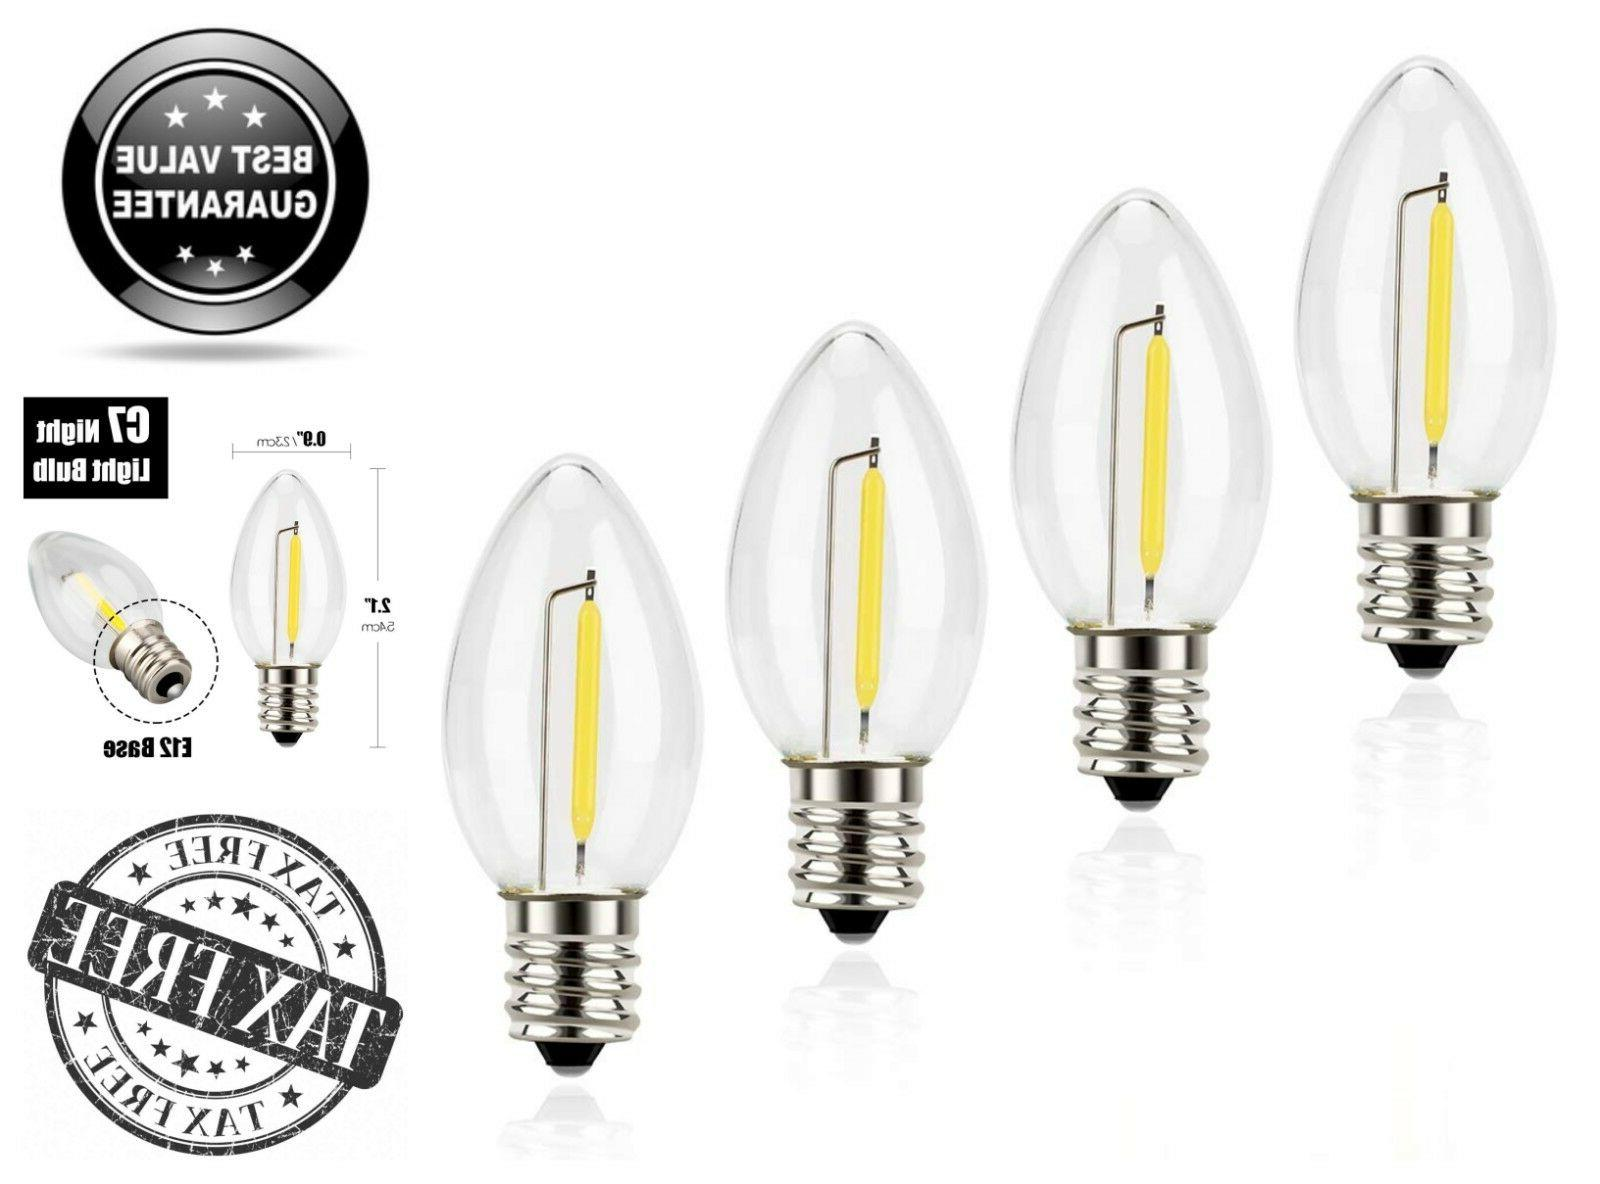 4 Pack Emotionlite C7 Candelabra LED Night Light Bulbs 2700K